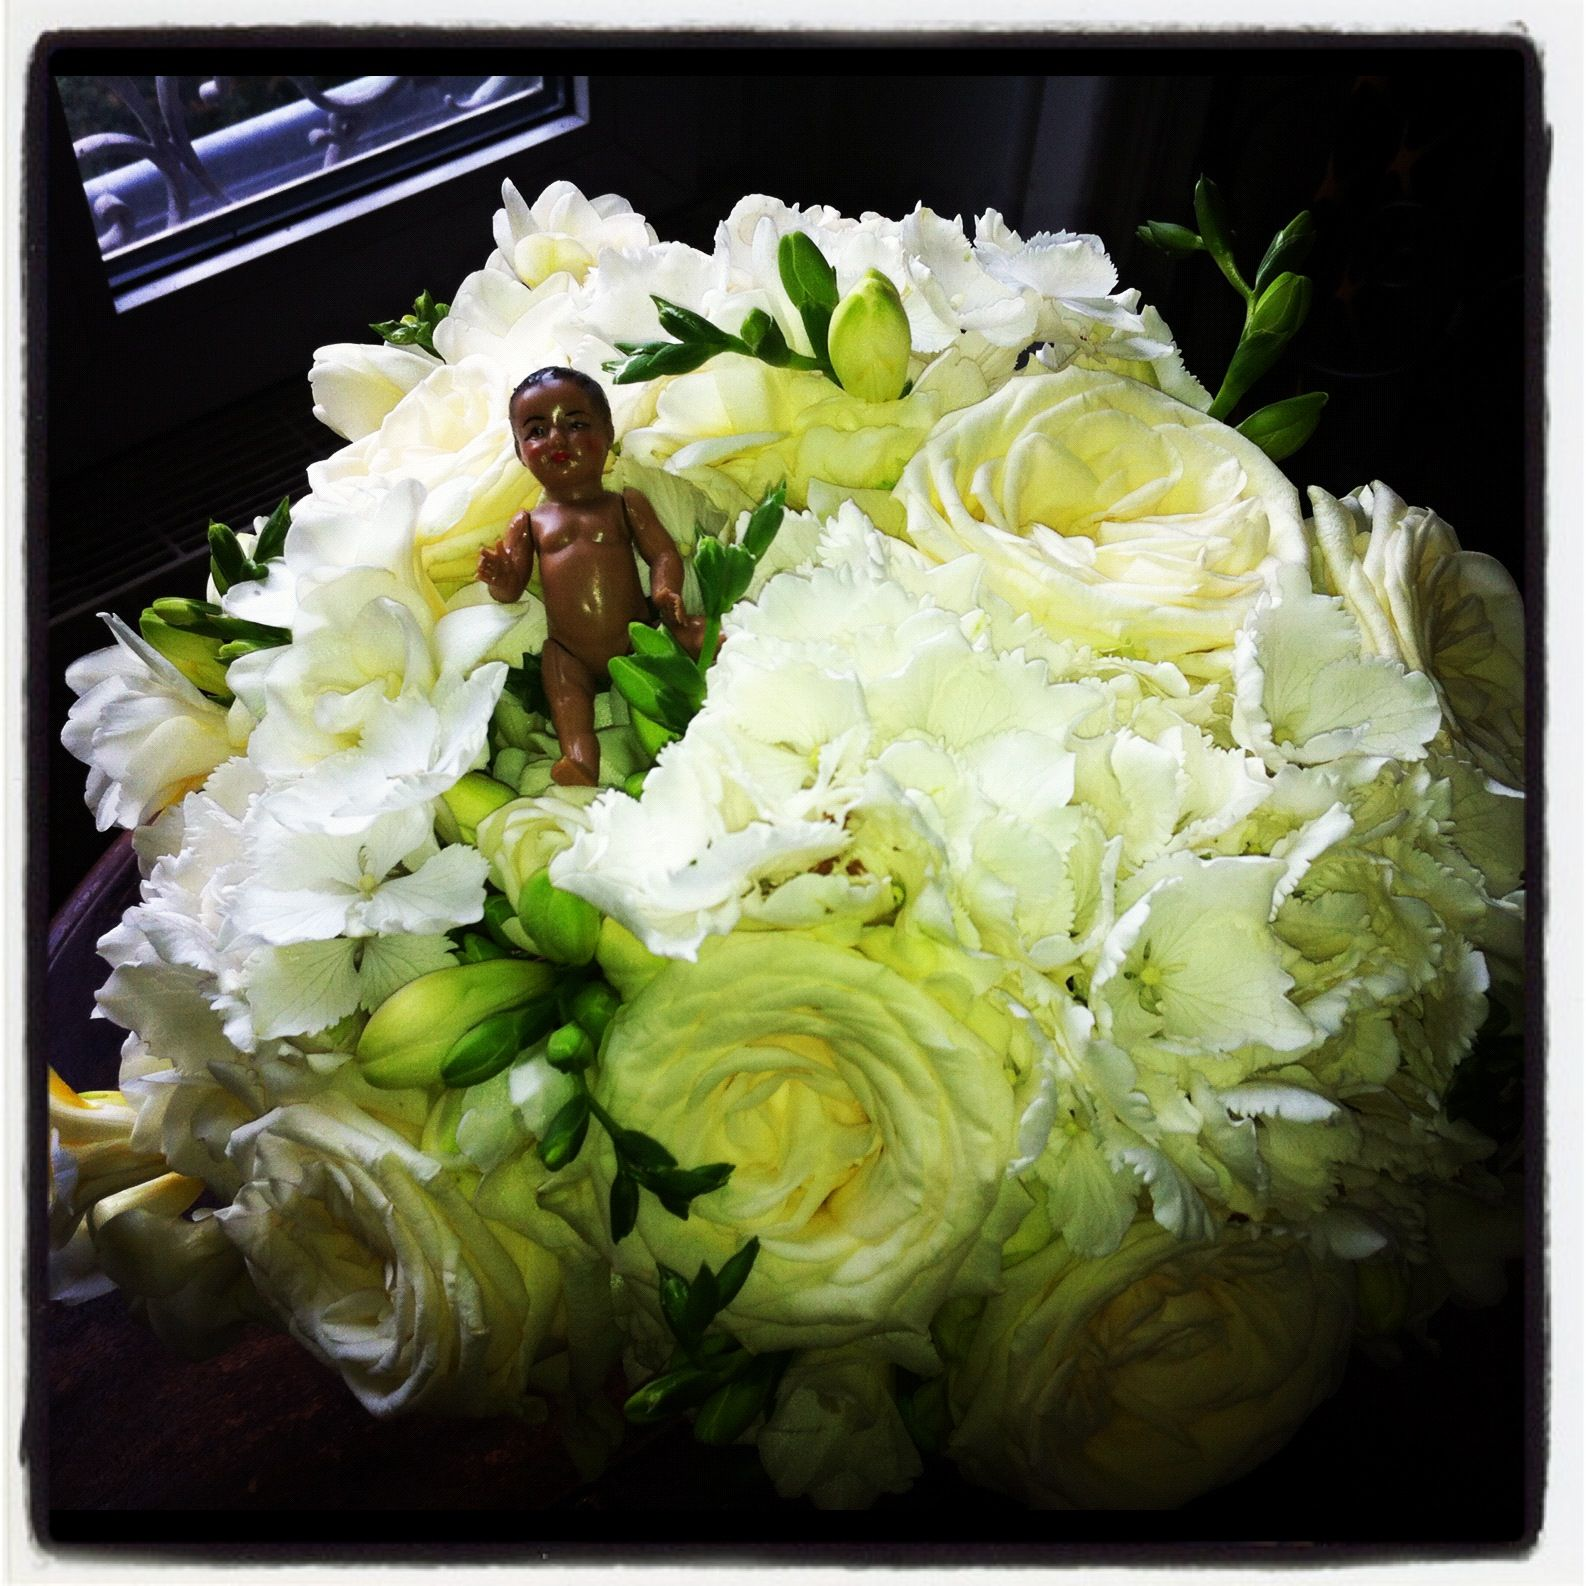 Hello dolly ! Here I am, surrouding by classie flowers ! All white but me ;-)